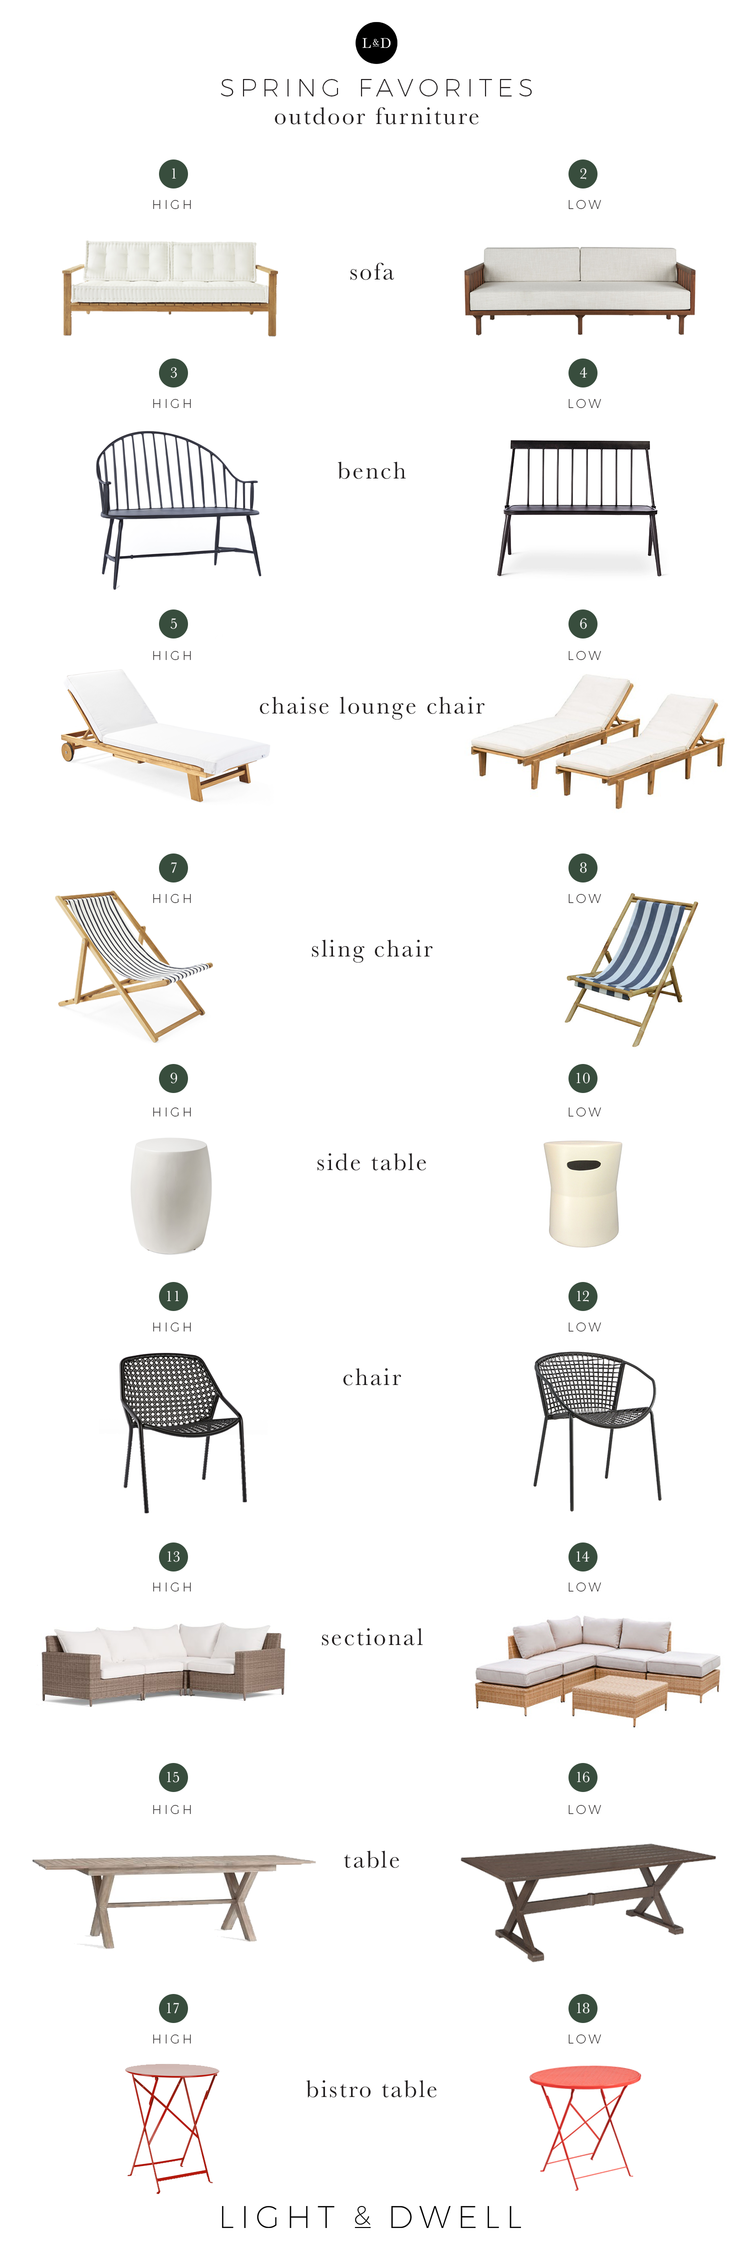 Swell Blog Gmtry Best Dining Table And Chair Ideas Images Gmtryco